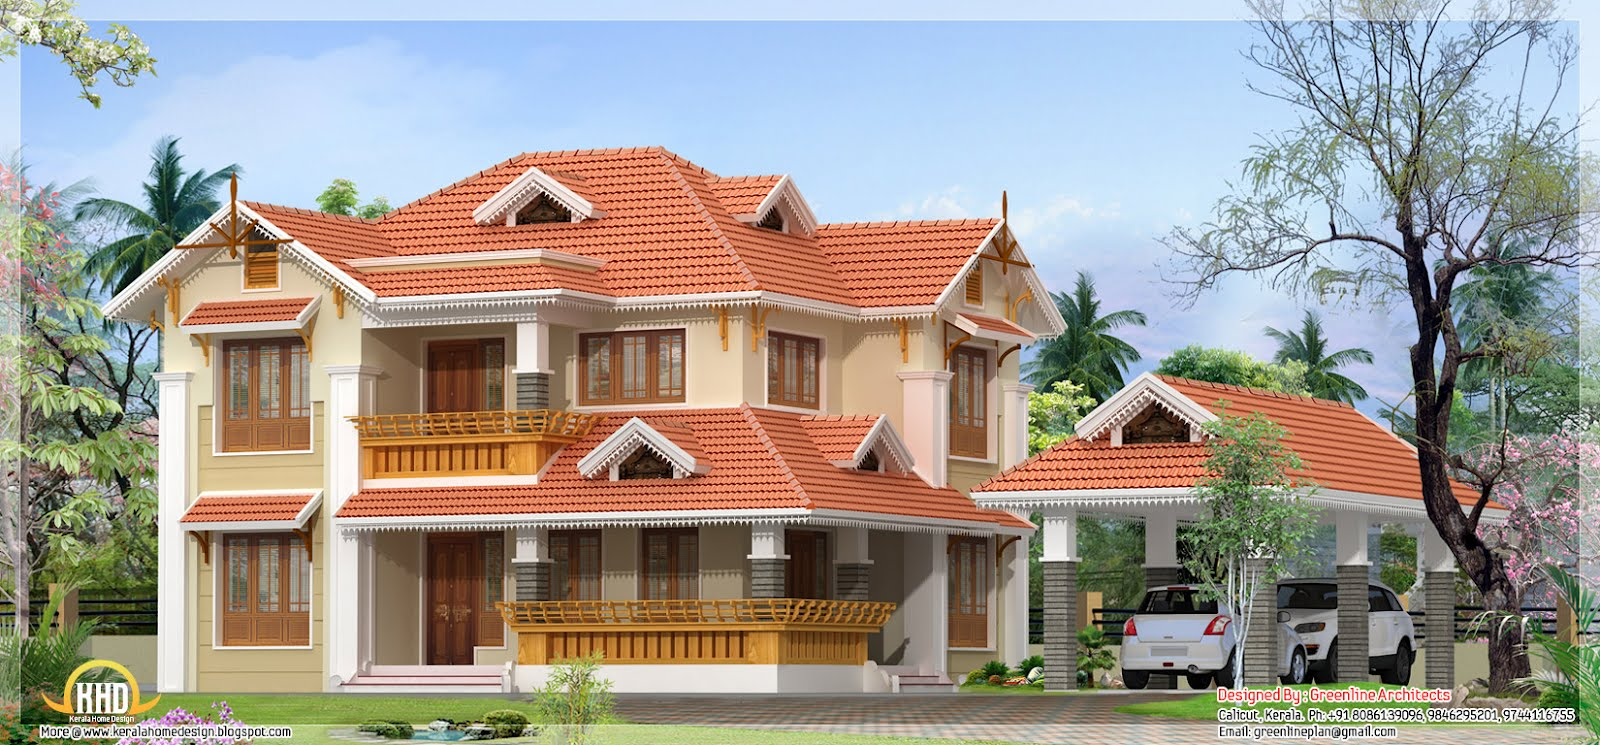 July 2012 kerala home design and floor plans for Home plans architect